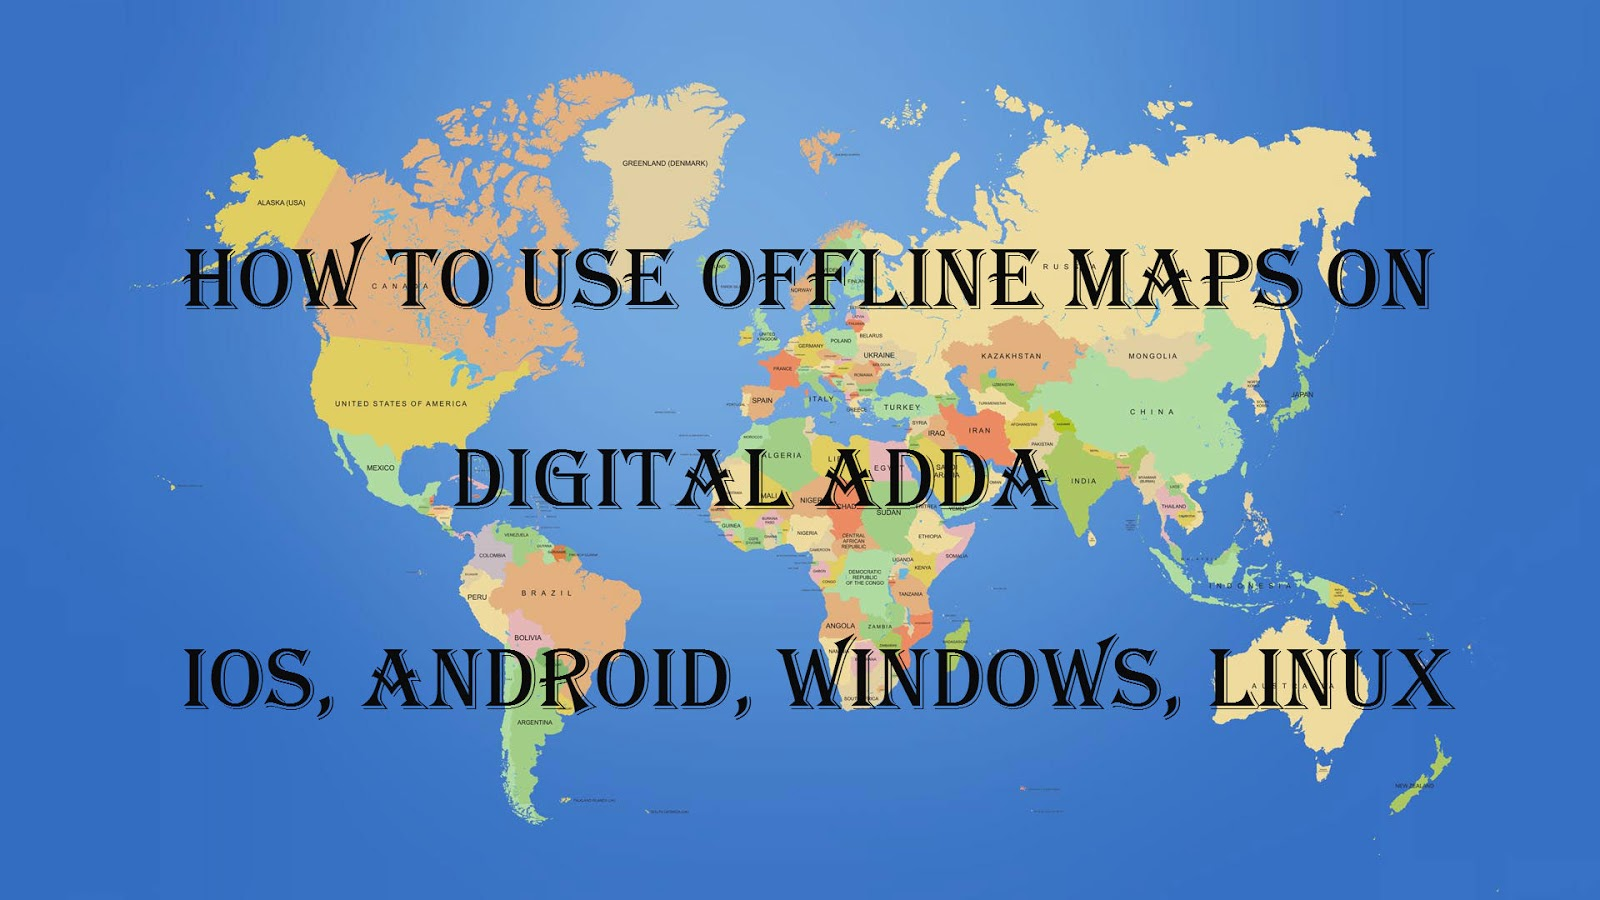 How To Use Offline Maps On IOS Android Windows Linux Digital Adda - Offline us map